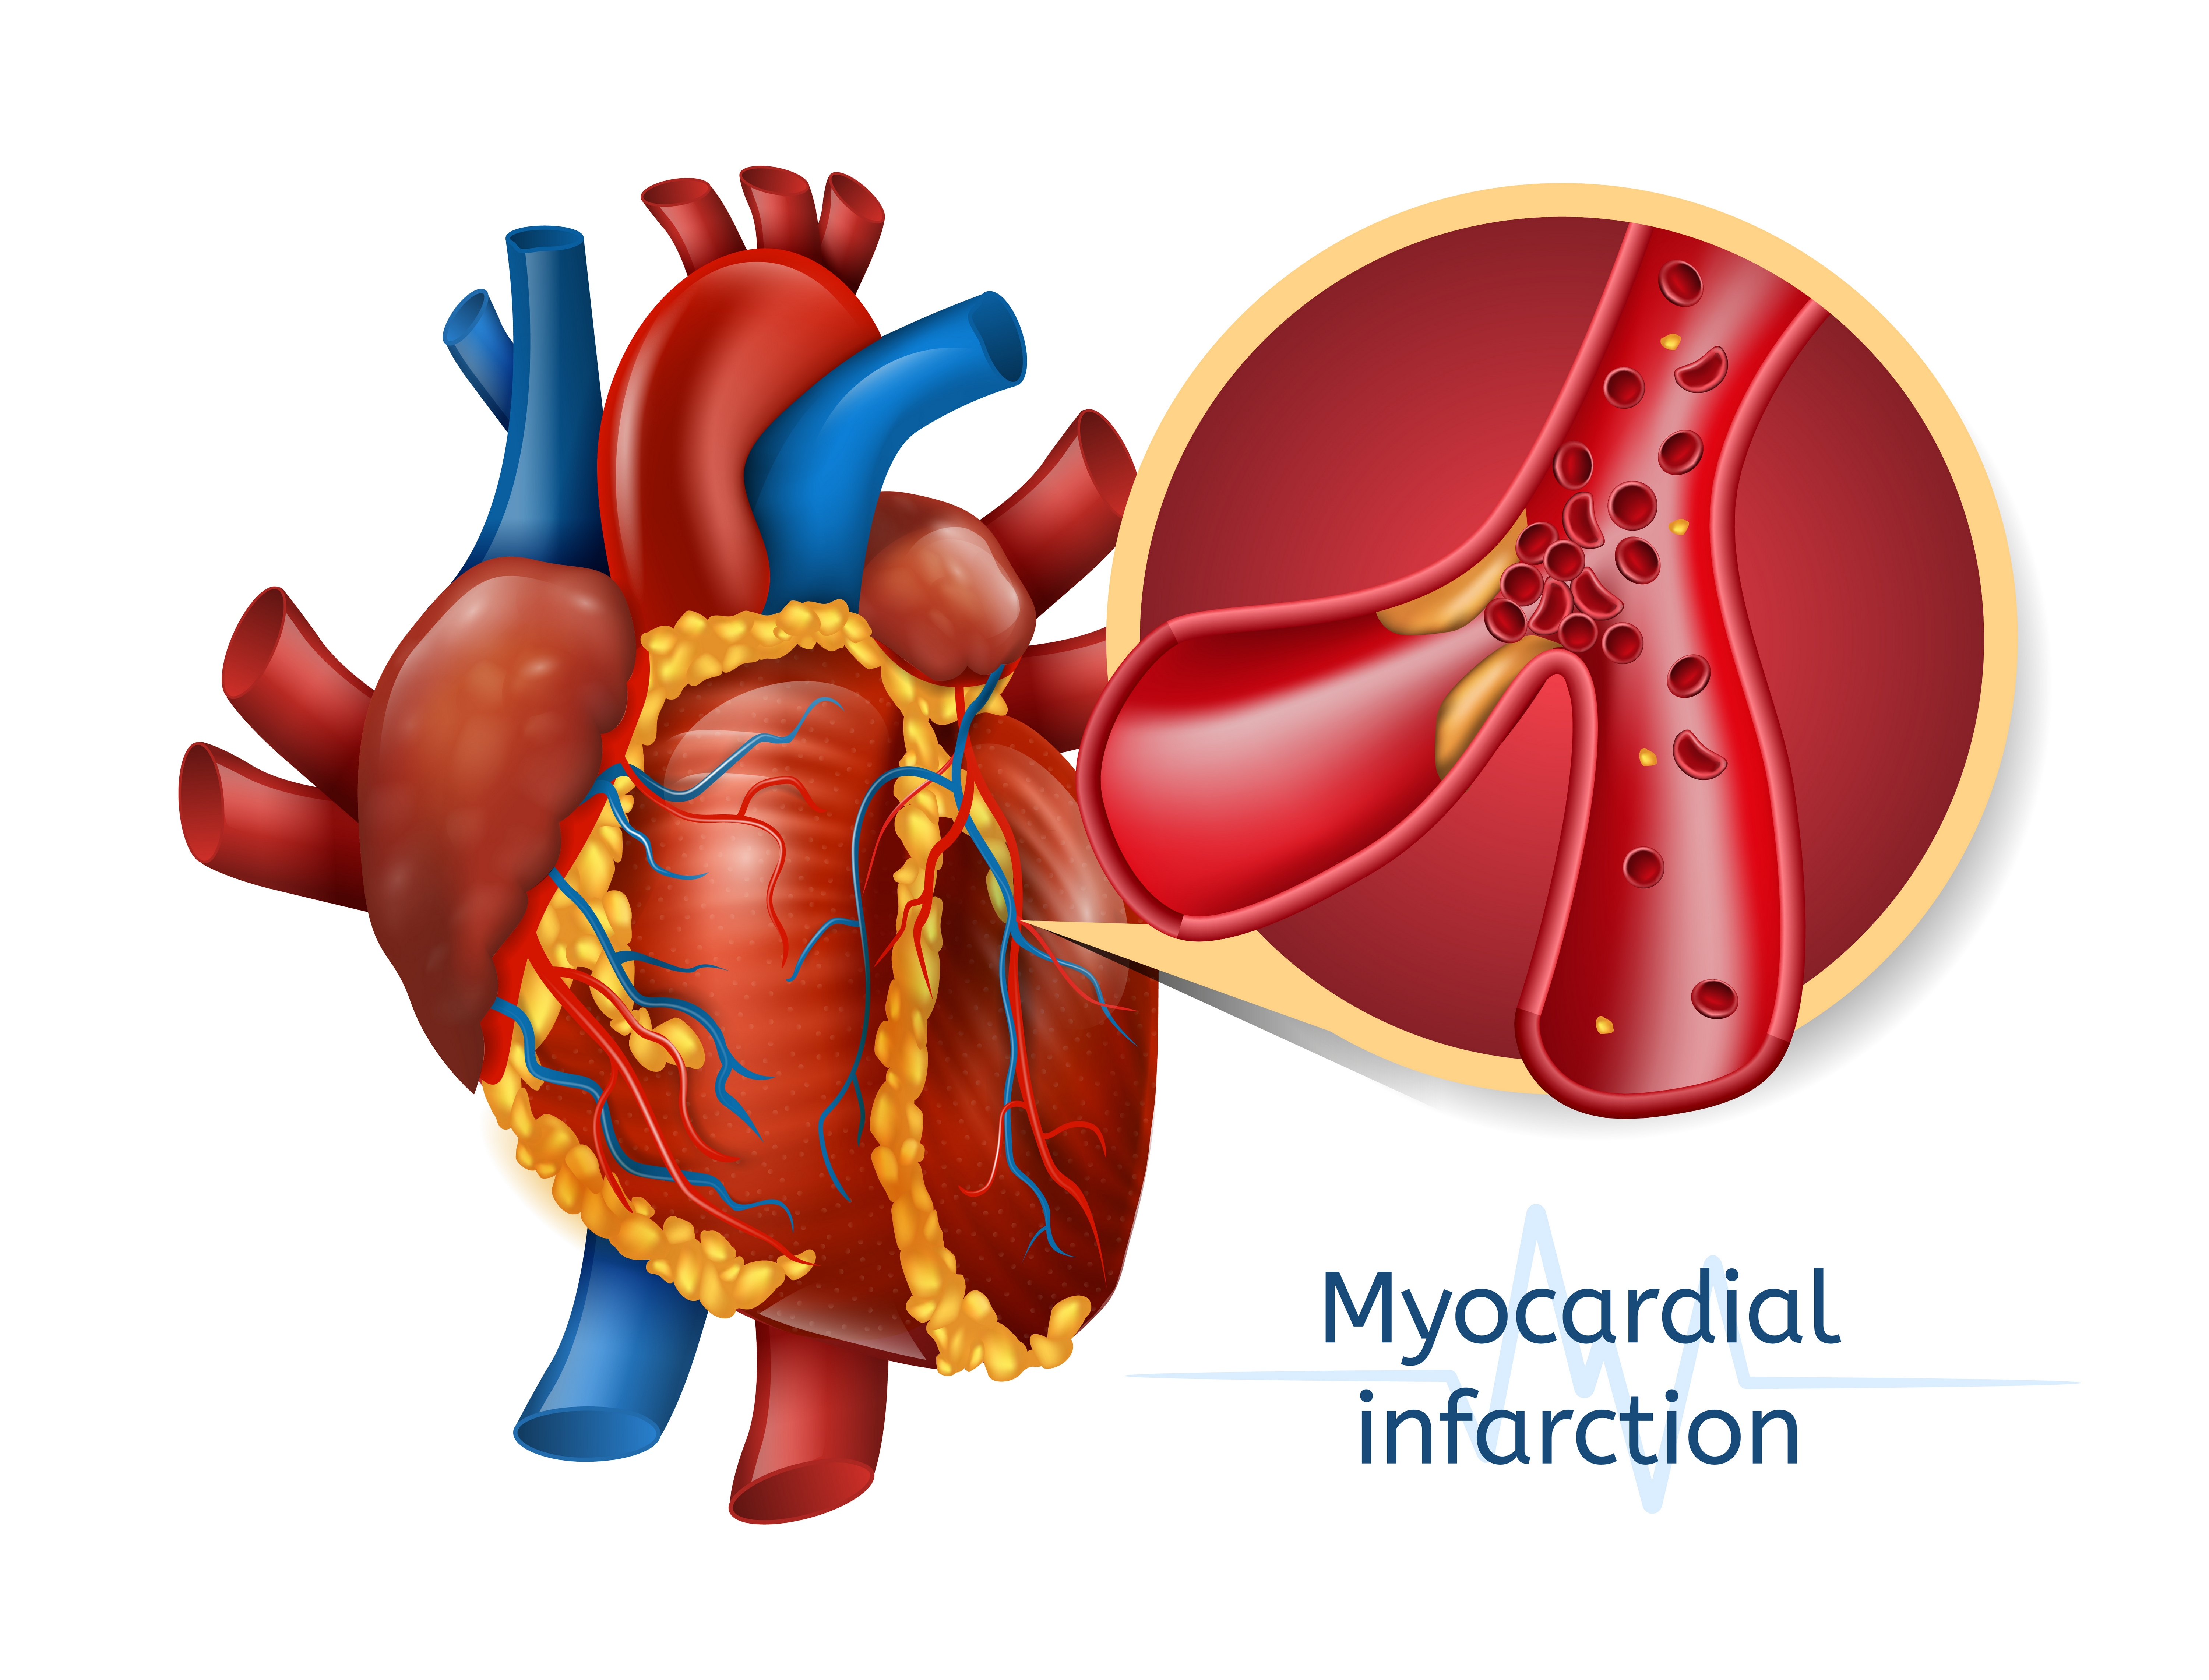 Myocardial infarction: